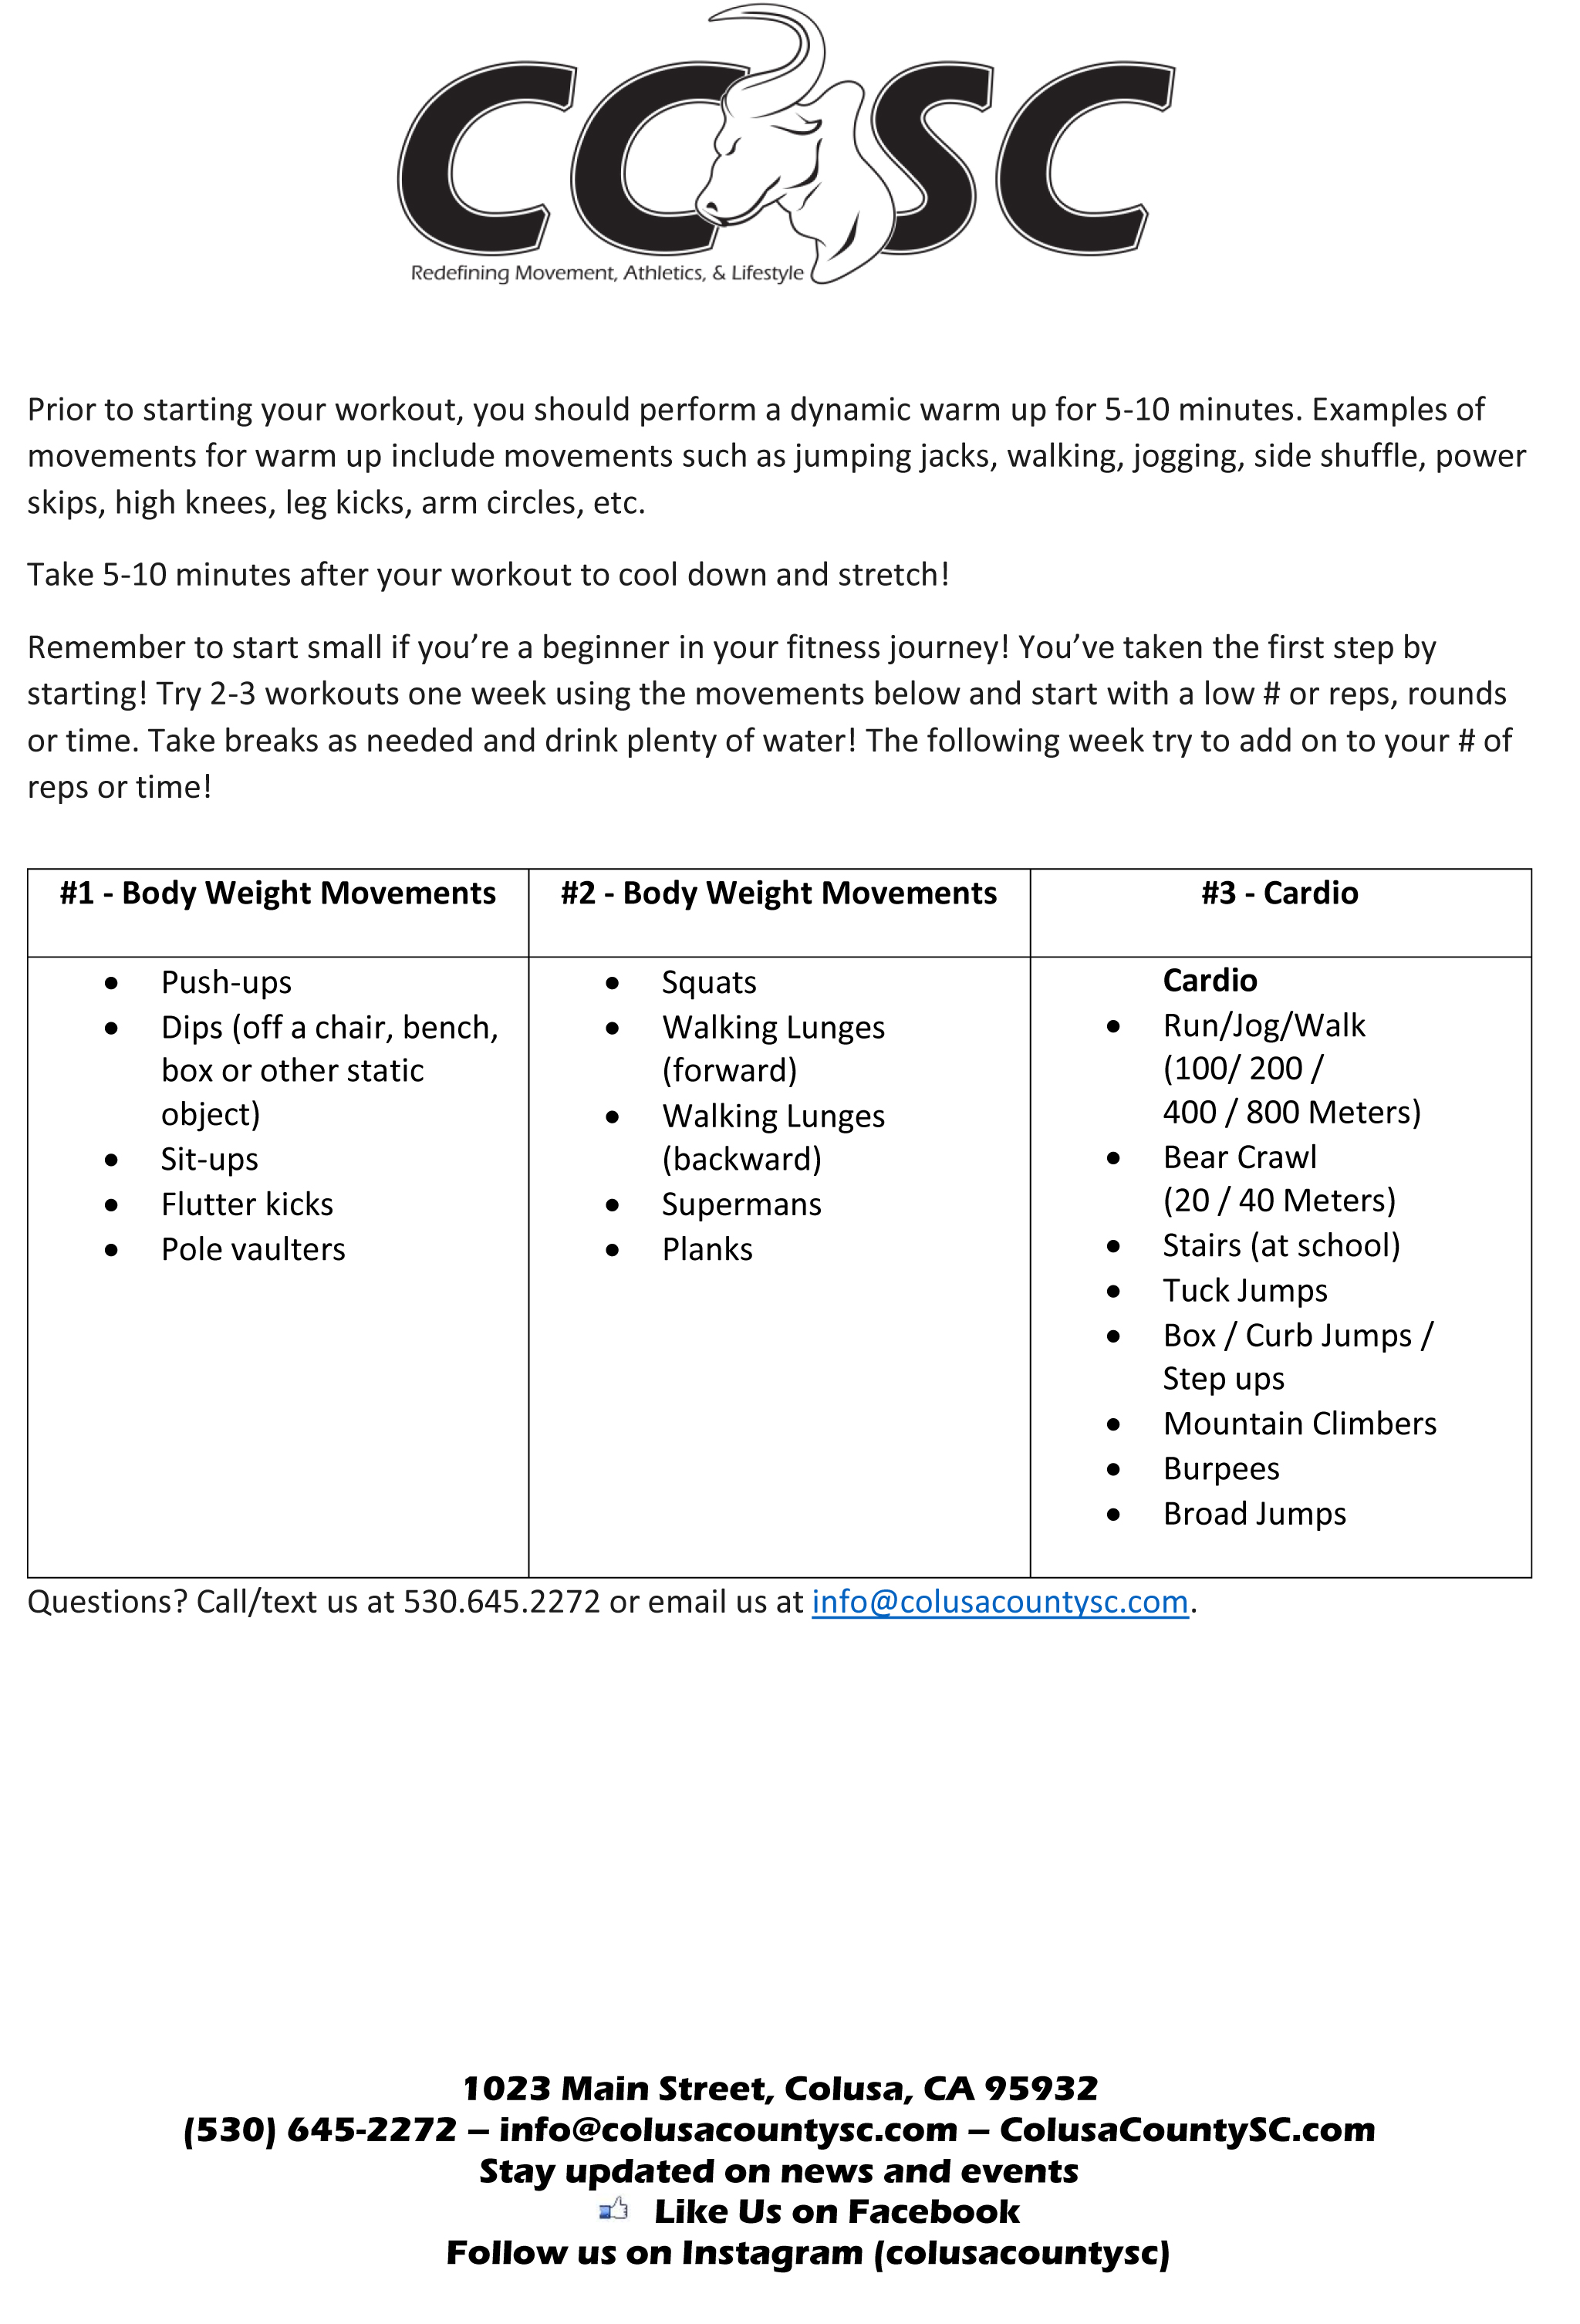 CCSC Exercise Guide-2.jpg